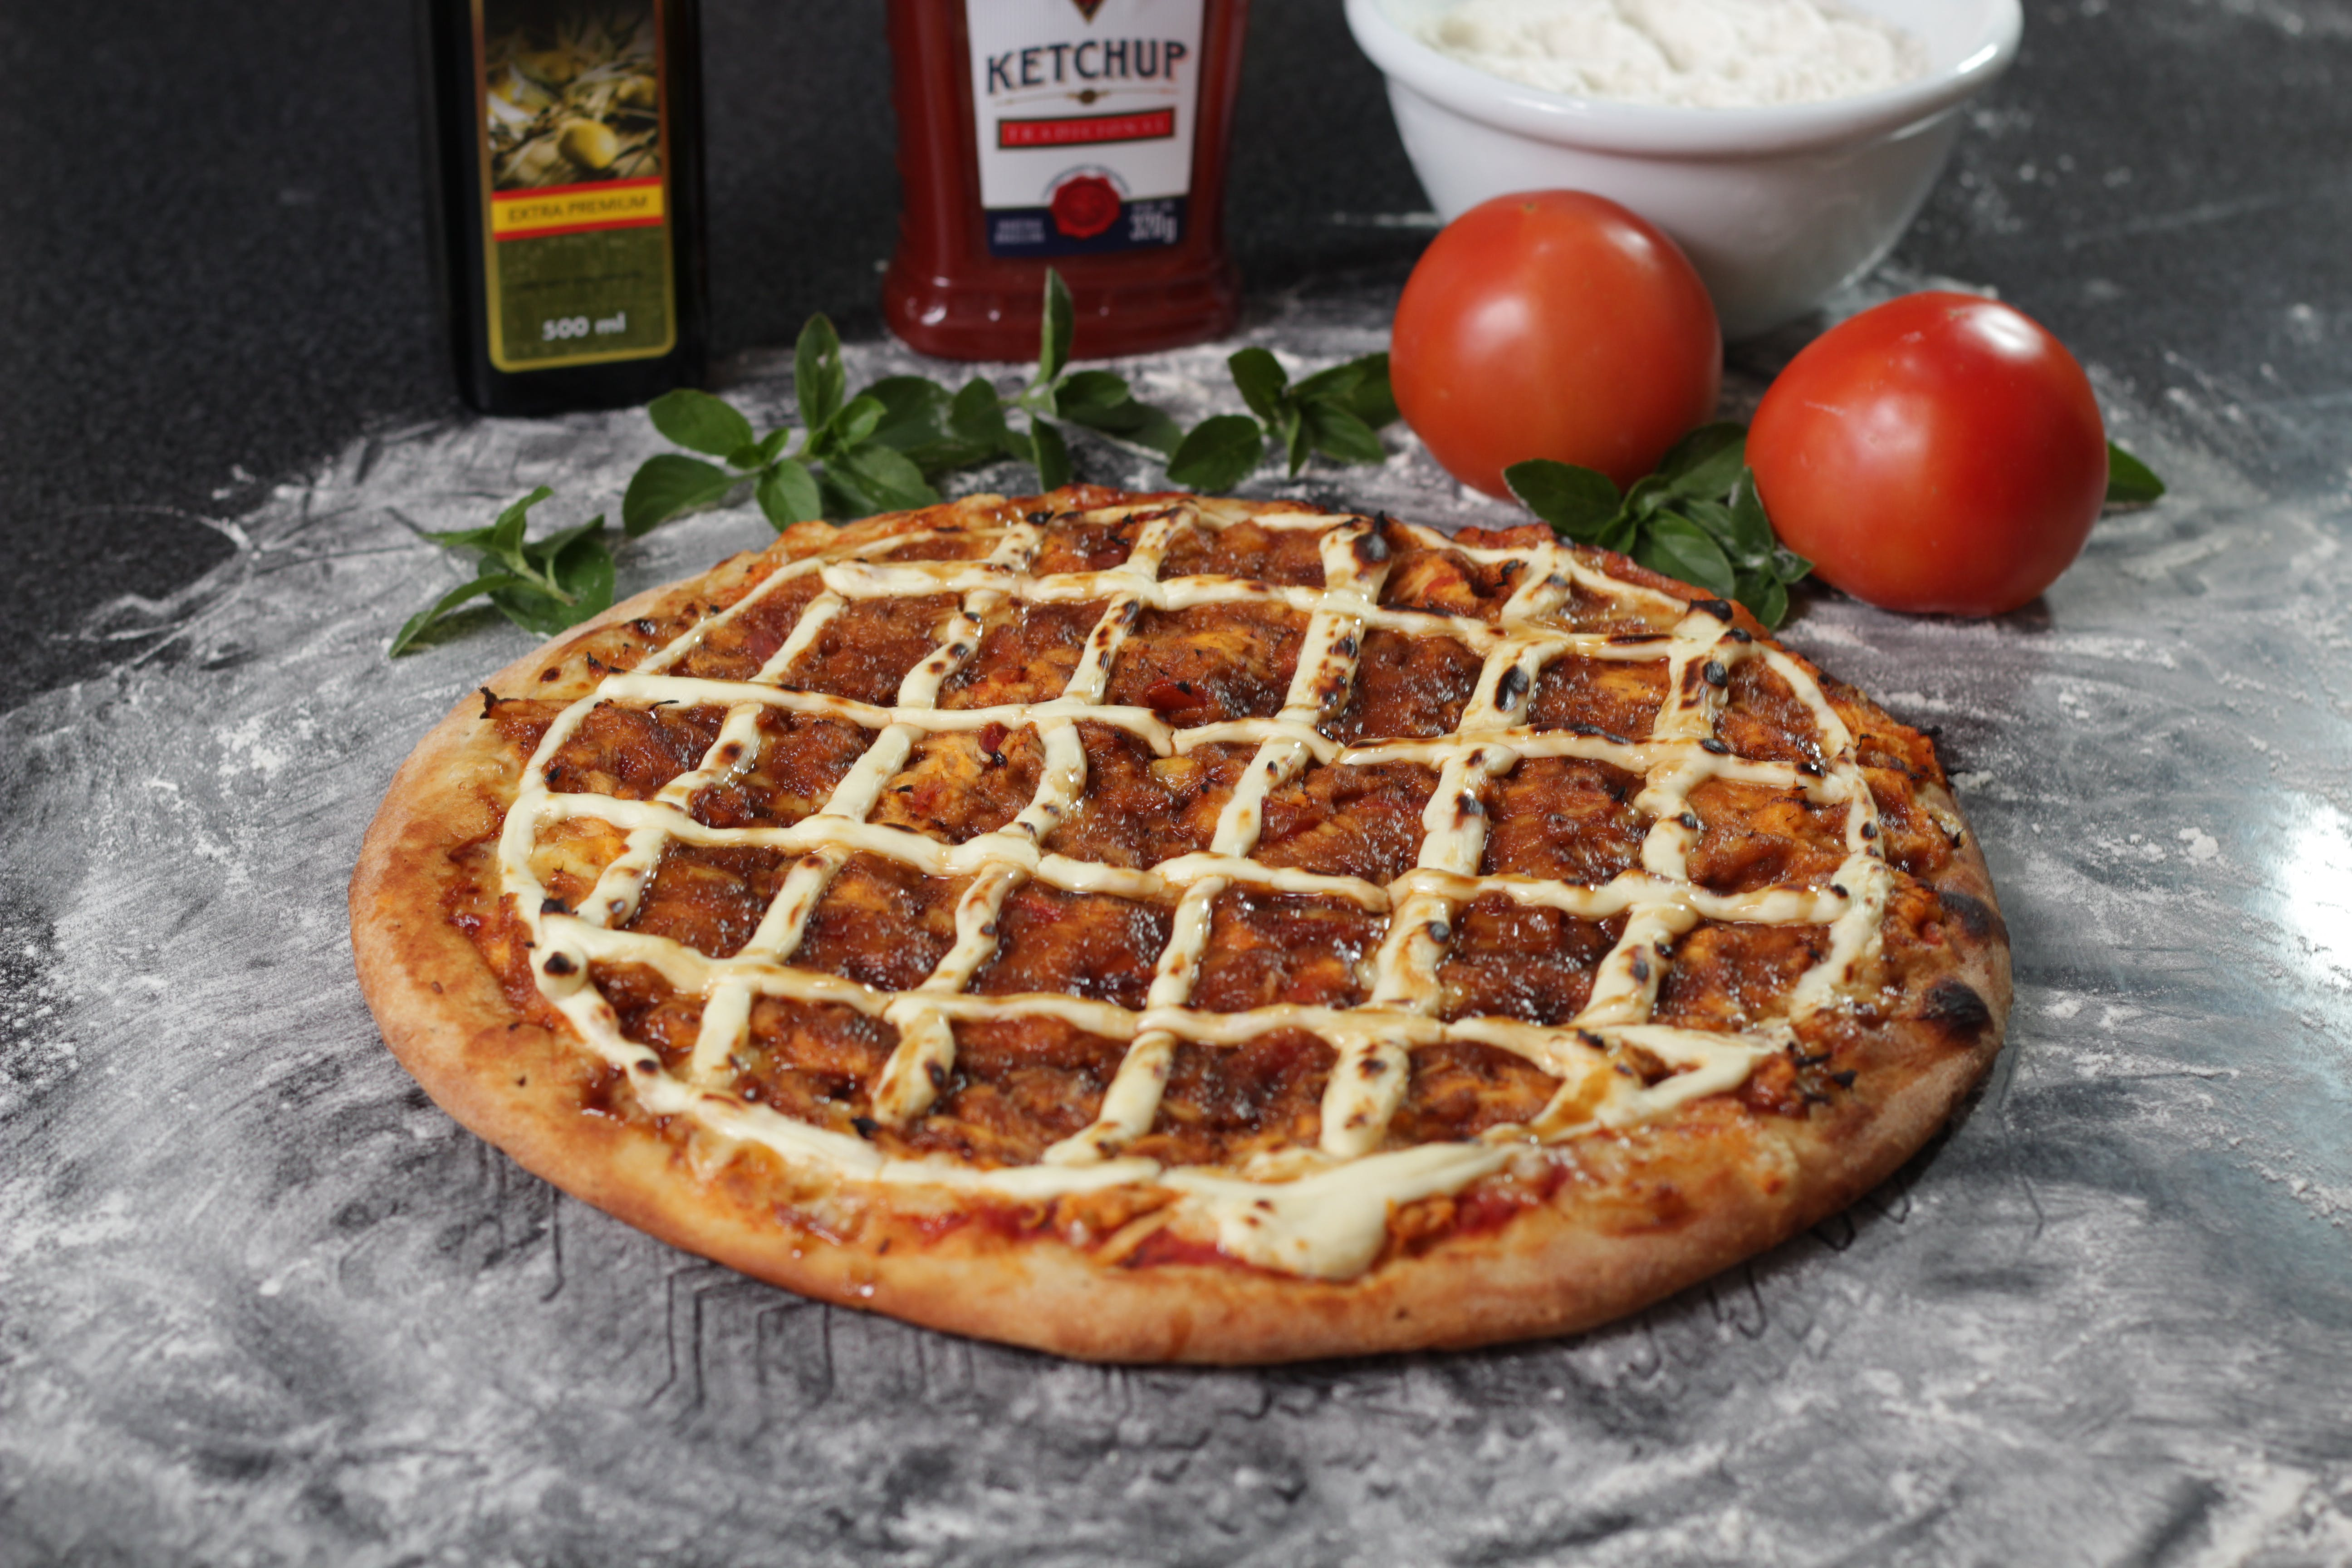 Baked Pizza Beside Two Red Tomatoes